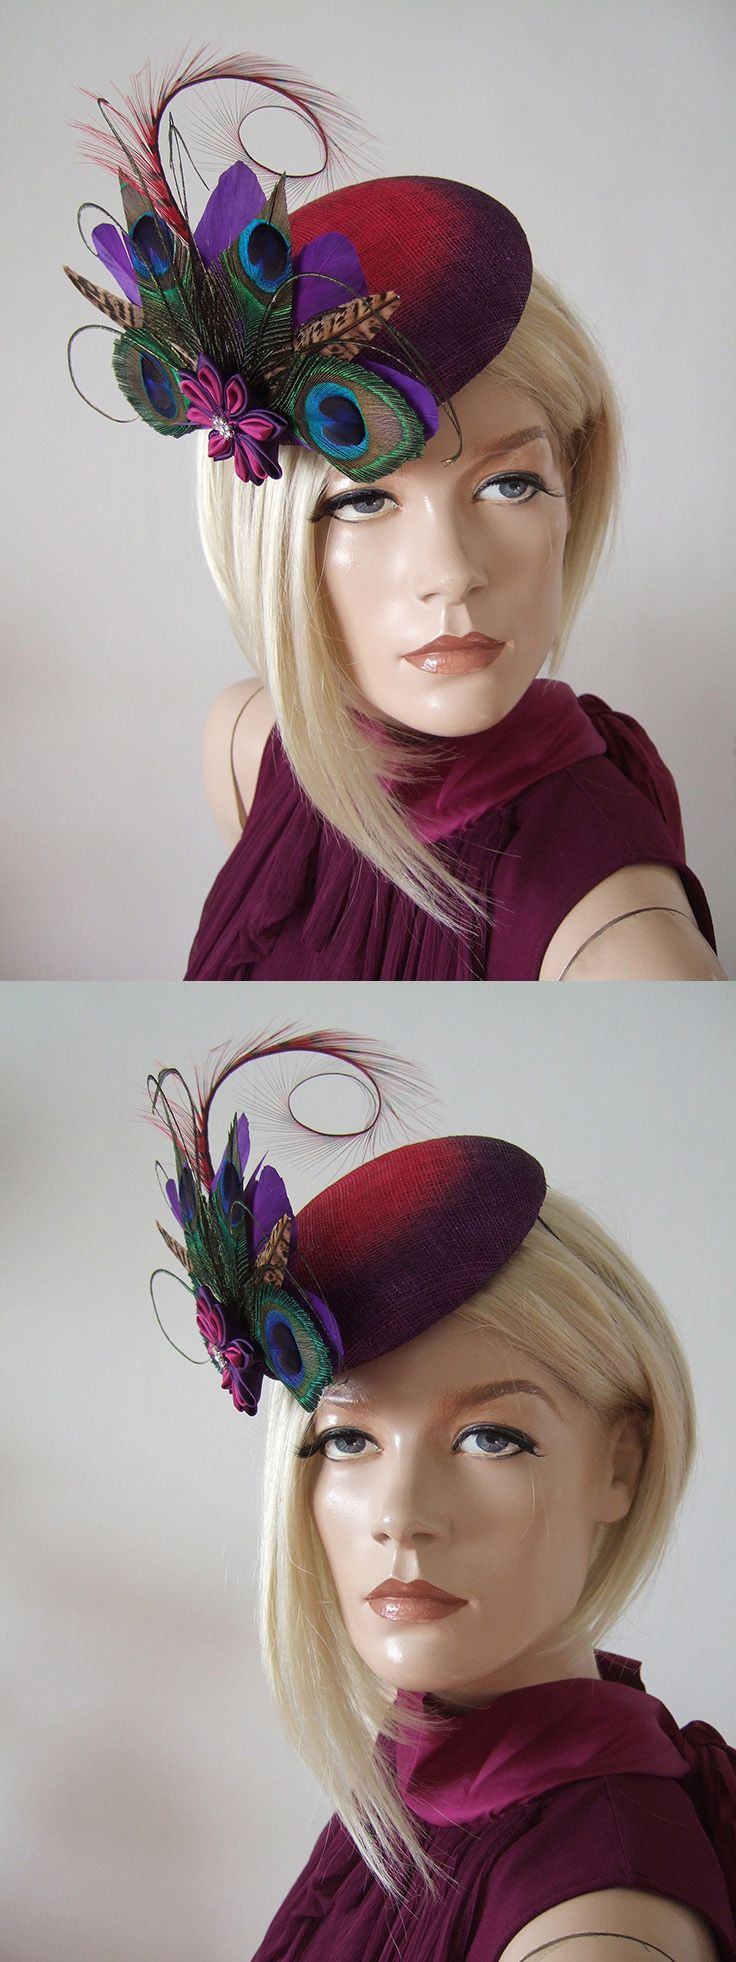 Beautiful Hand Made Fascinator. Fuchsia Graduating to Purple Ombre Large Button Base, with Feather Arrangement in all Tones of Blues and Greens from the Peacock, on a Bed of Purple Swan and Ringneck Pheasant Feathers centred with a Deep Pink and Purple Tsumami Kanzashi Flower with a little Crystal Button sparkling from the centre. #winterfashion #ombre #ombrefashion #aw17 #peacock #millinery #fascinator #affiliatelink #headpiece